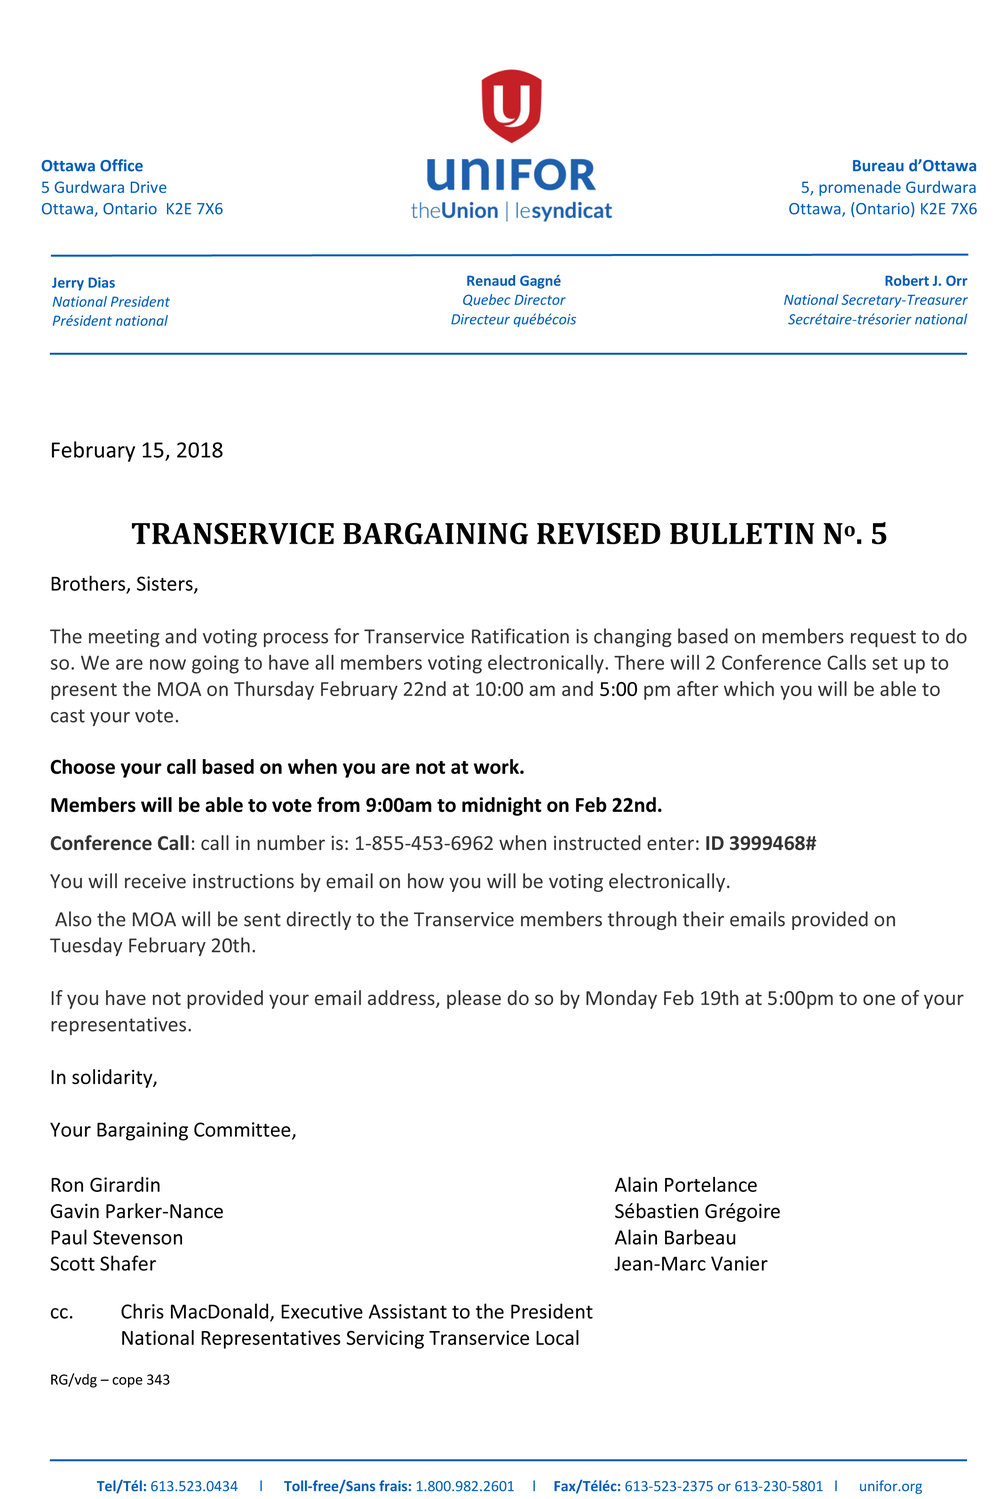 2018-02-14-Transervice-Bargaining-Bulletin-05-revised-2018-02-15.jpg